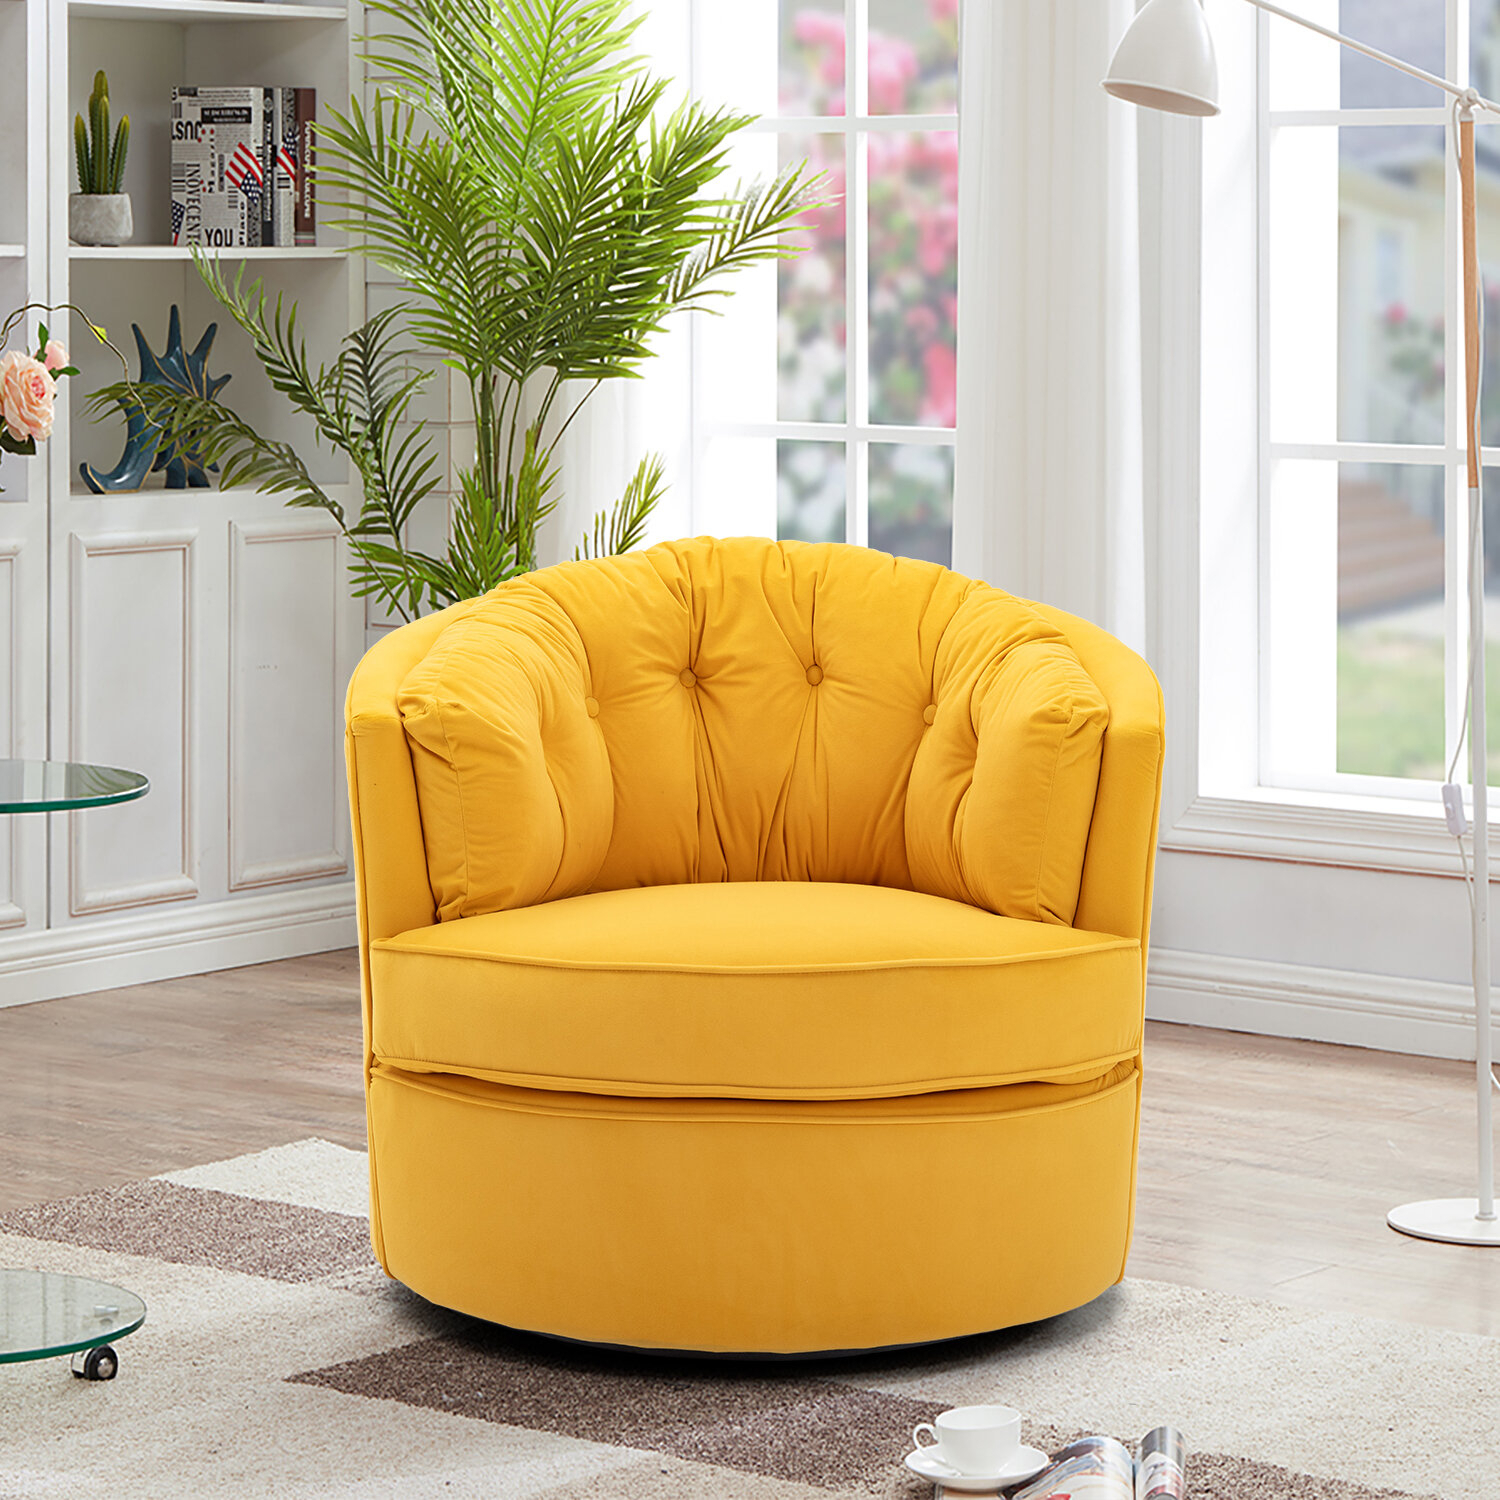 Barrel Yellow Accent Chairs You'Ll Love In 2021 | Wayfair Regarding Alwillie Tufted Back Barrel Chairs (View 11 of 15)